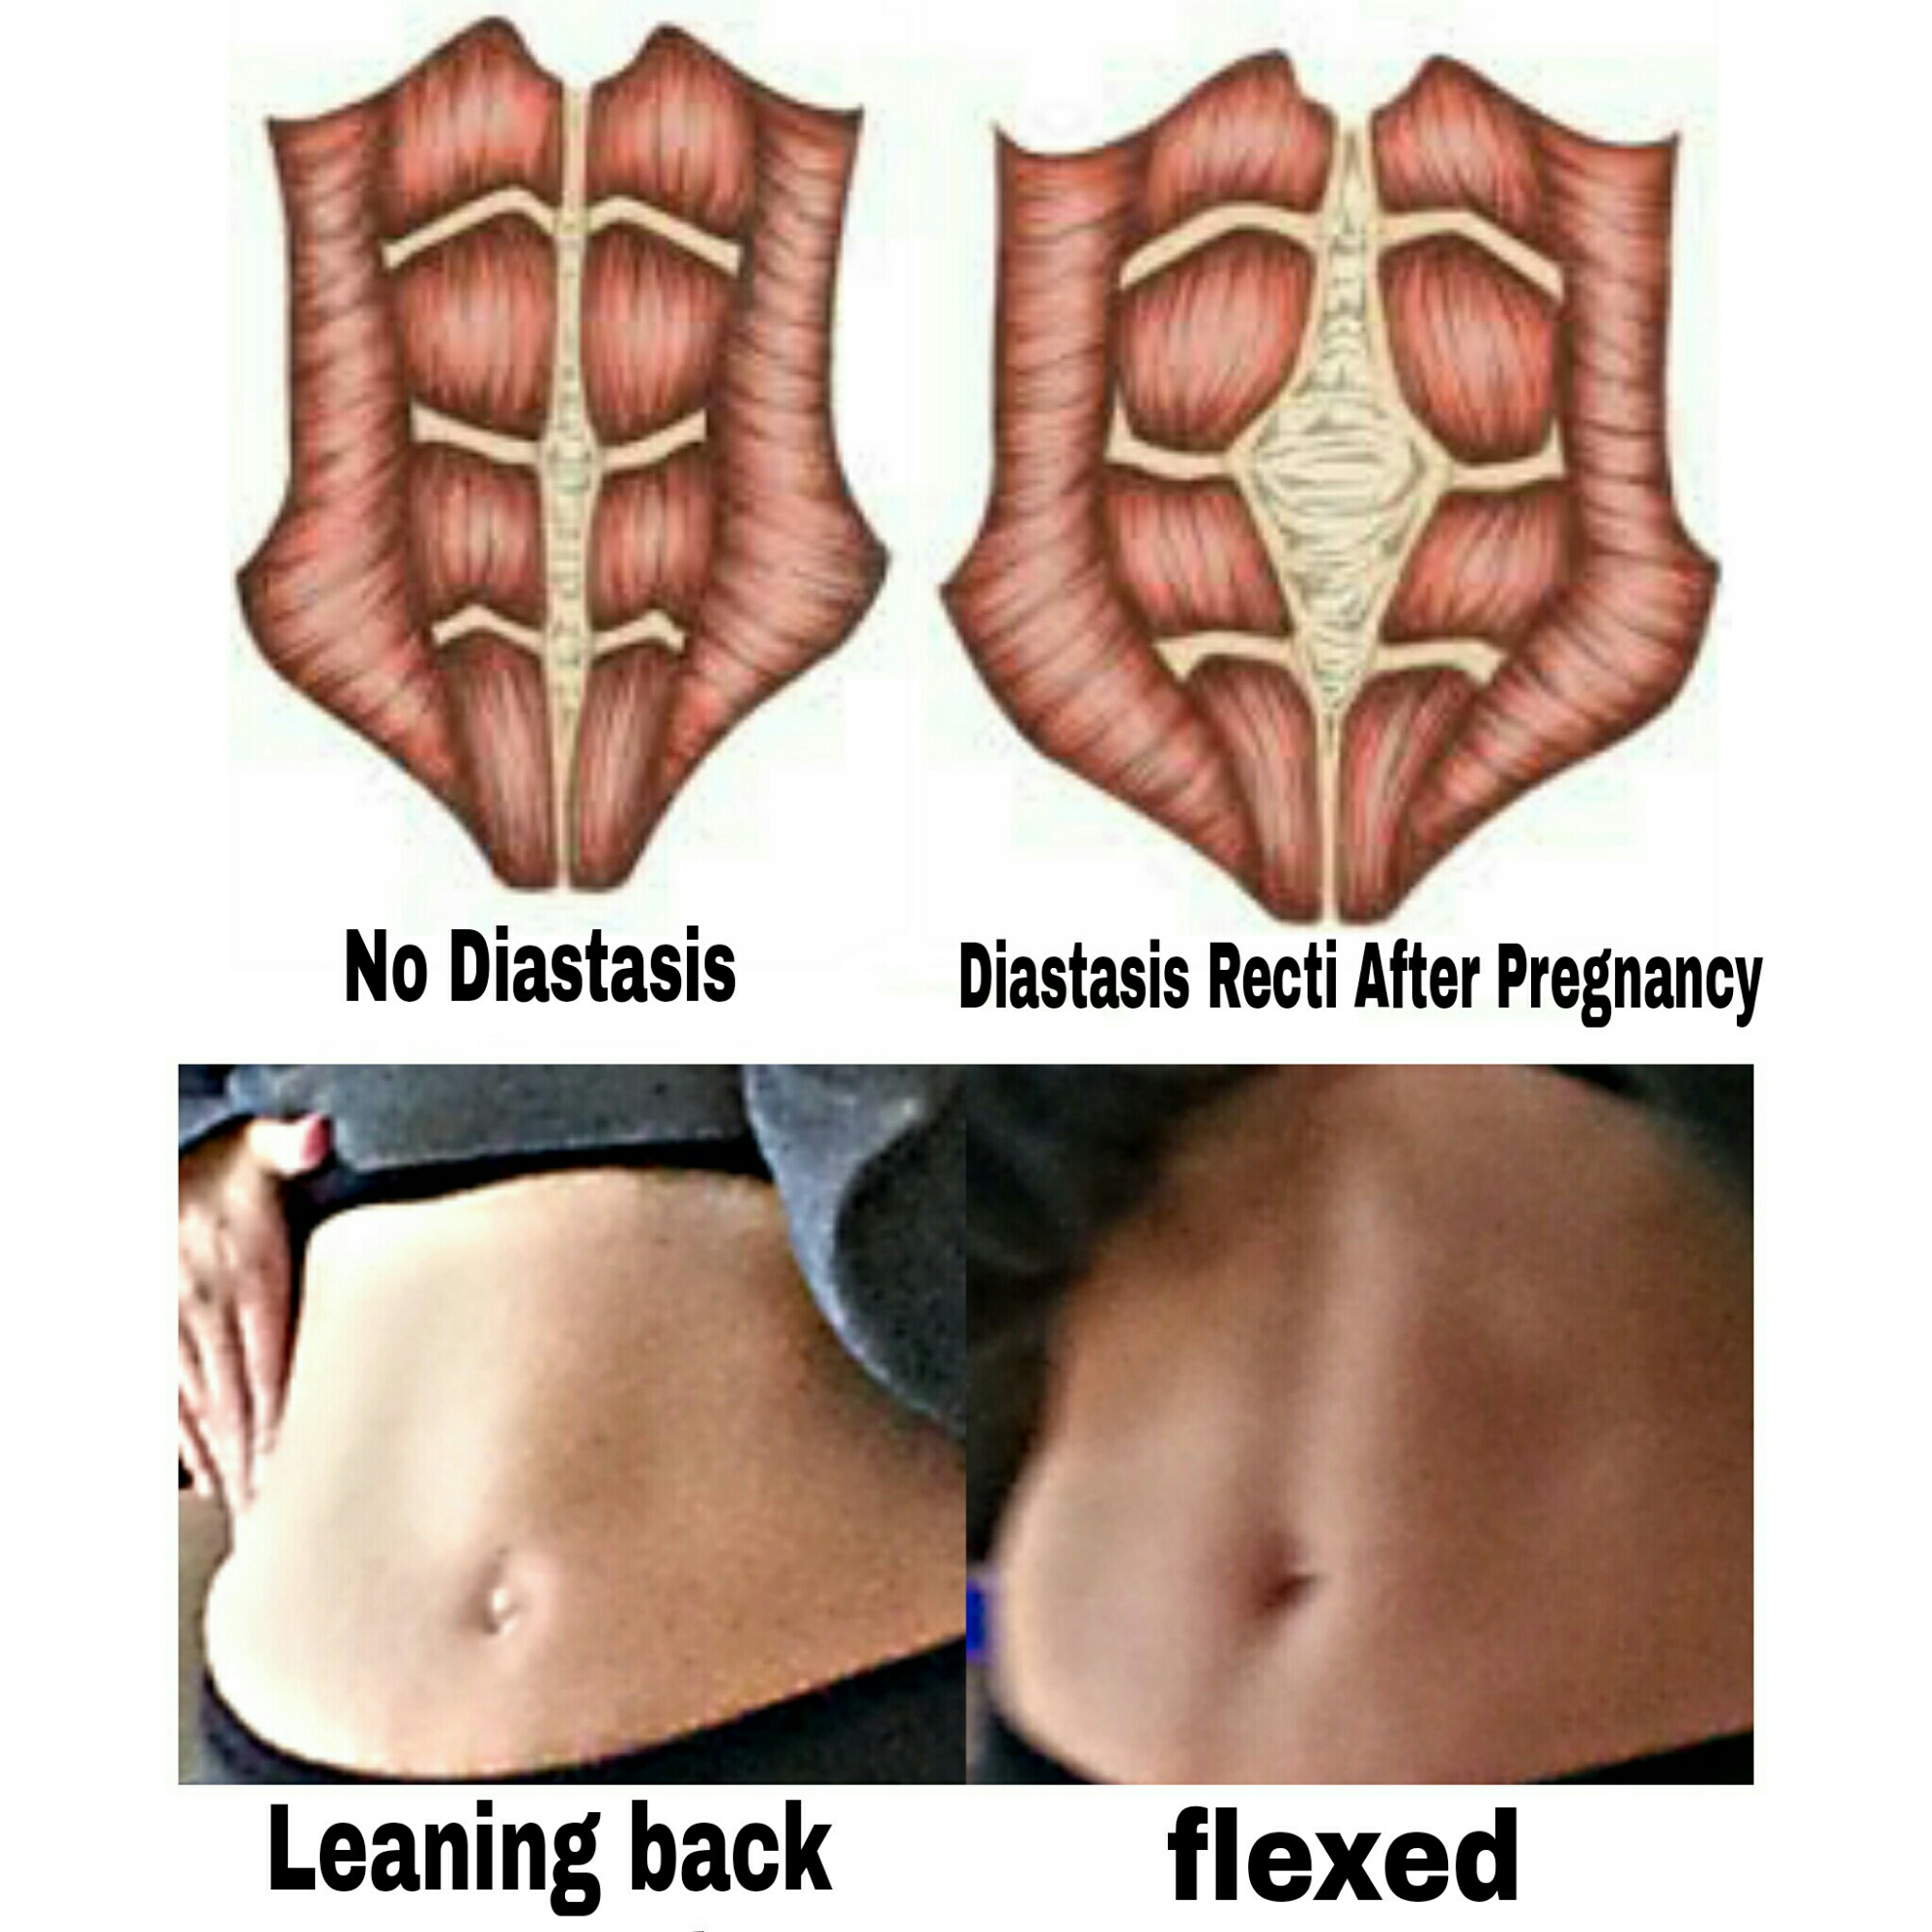 Postpartum Diastasis Recti – How it affects working out